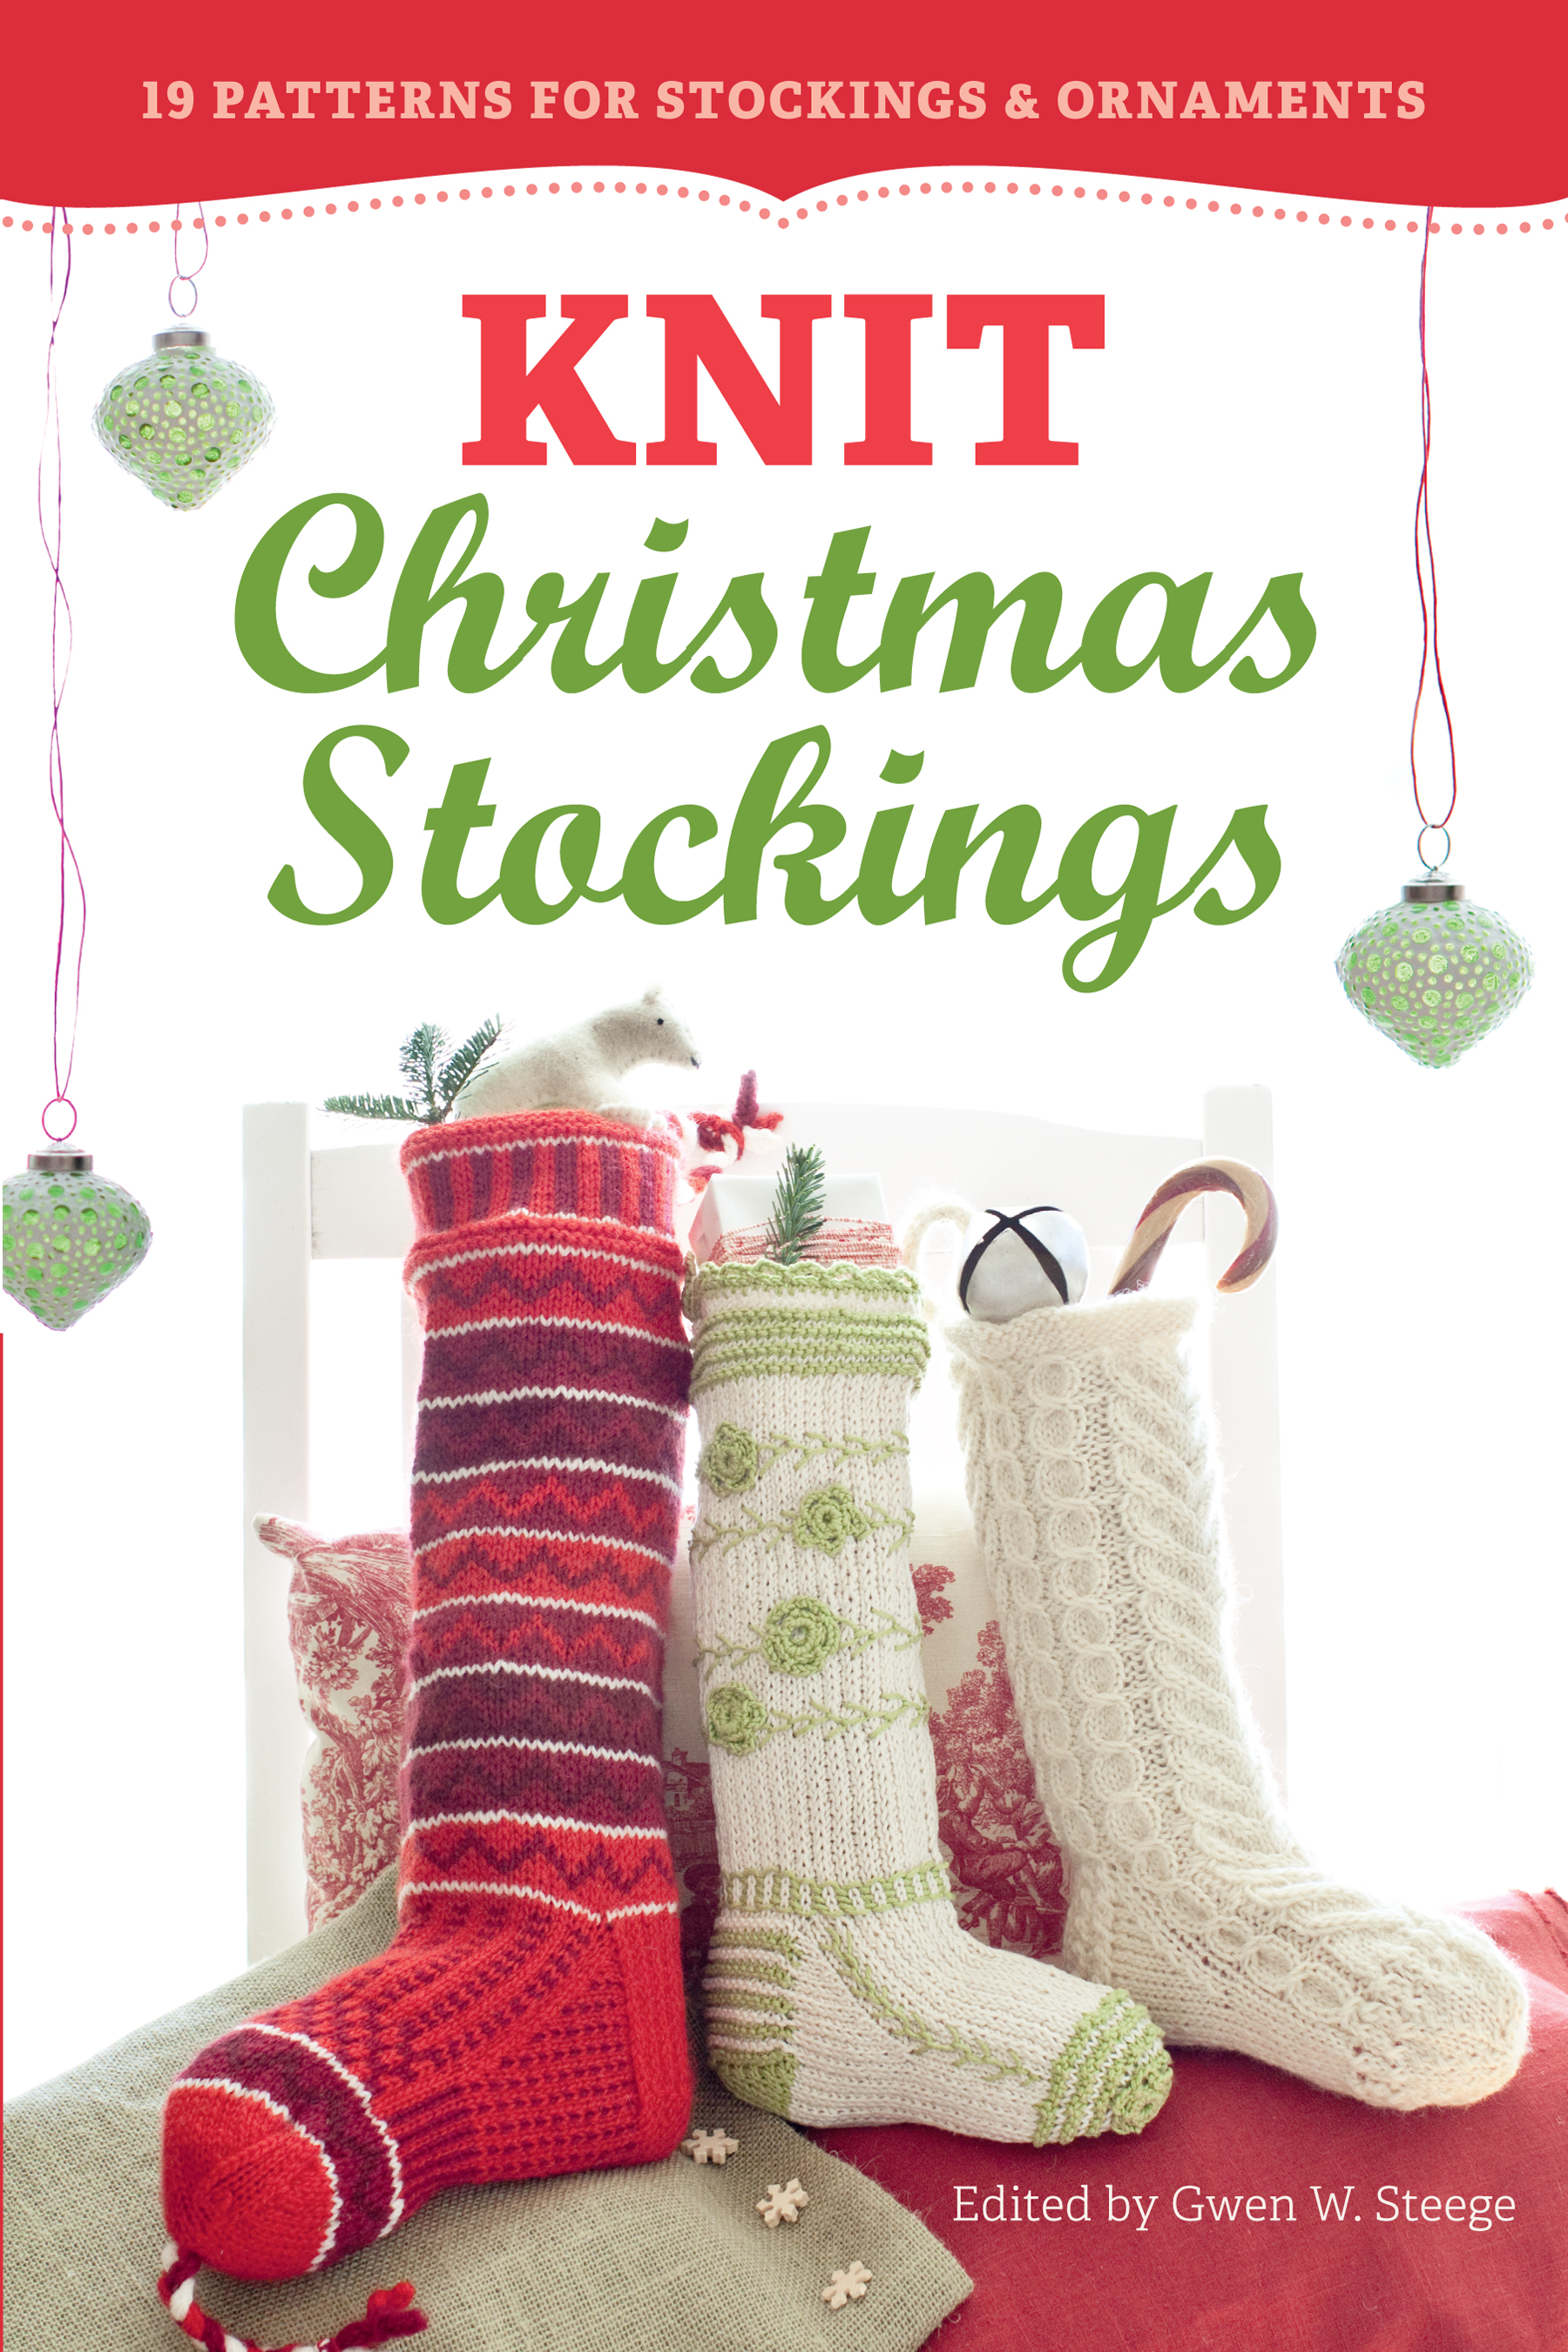 Knit Christmas Stockings, 2nd Edition 19 Patterns for Stockings & Ornaments - Gwen W. Steege